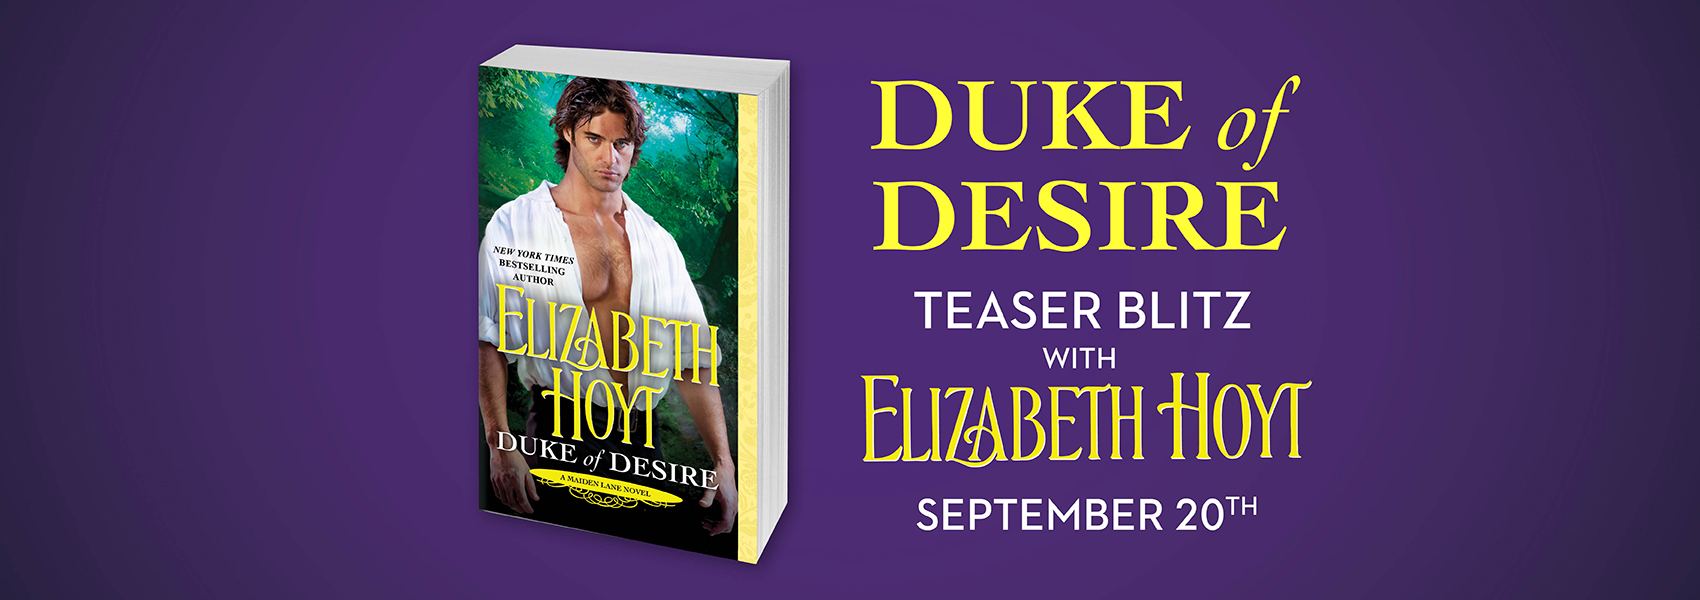 SPOTLIGHT: 'Duke of Desire' by Elizabeth Hoyt